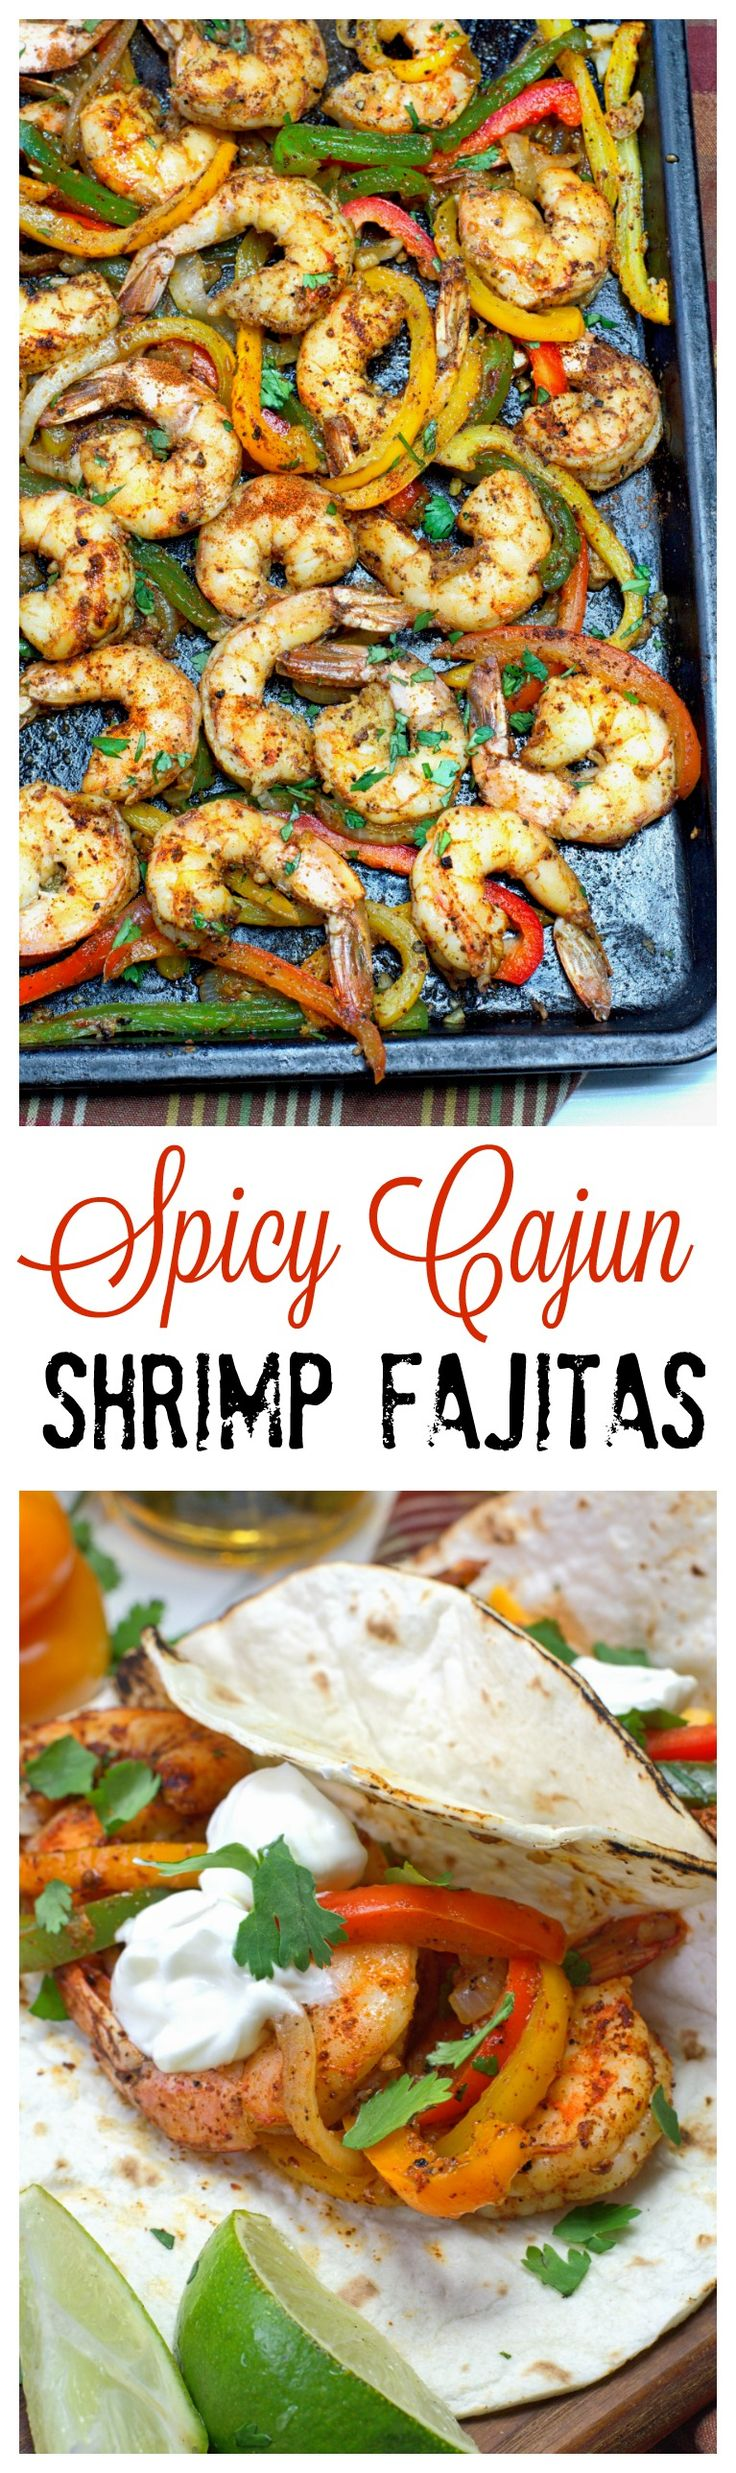 This recipe for Spicy Cajun Shrimp Fajitas is always a huge hit among family and friends. Tender shrimp and veggies that is super easy and full of flavor.